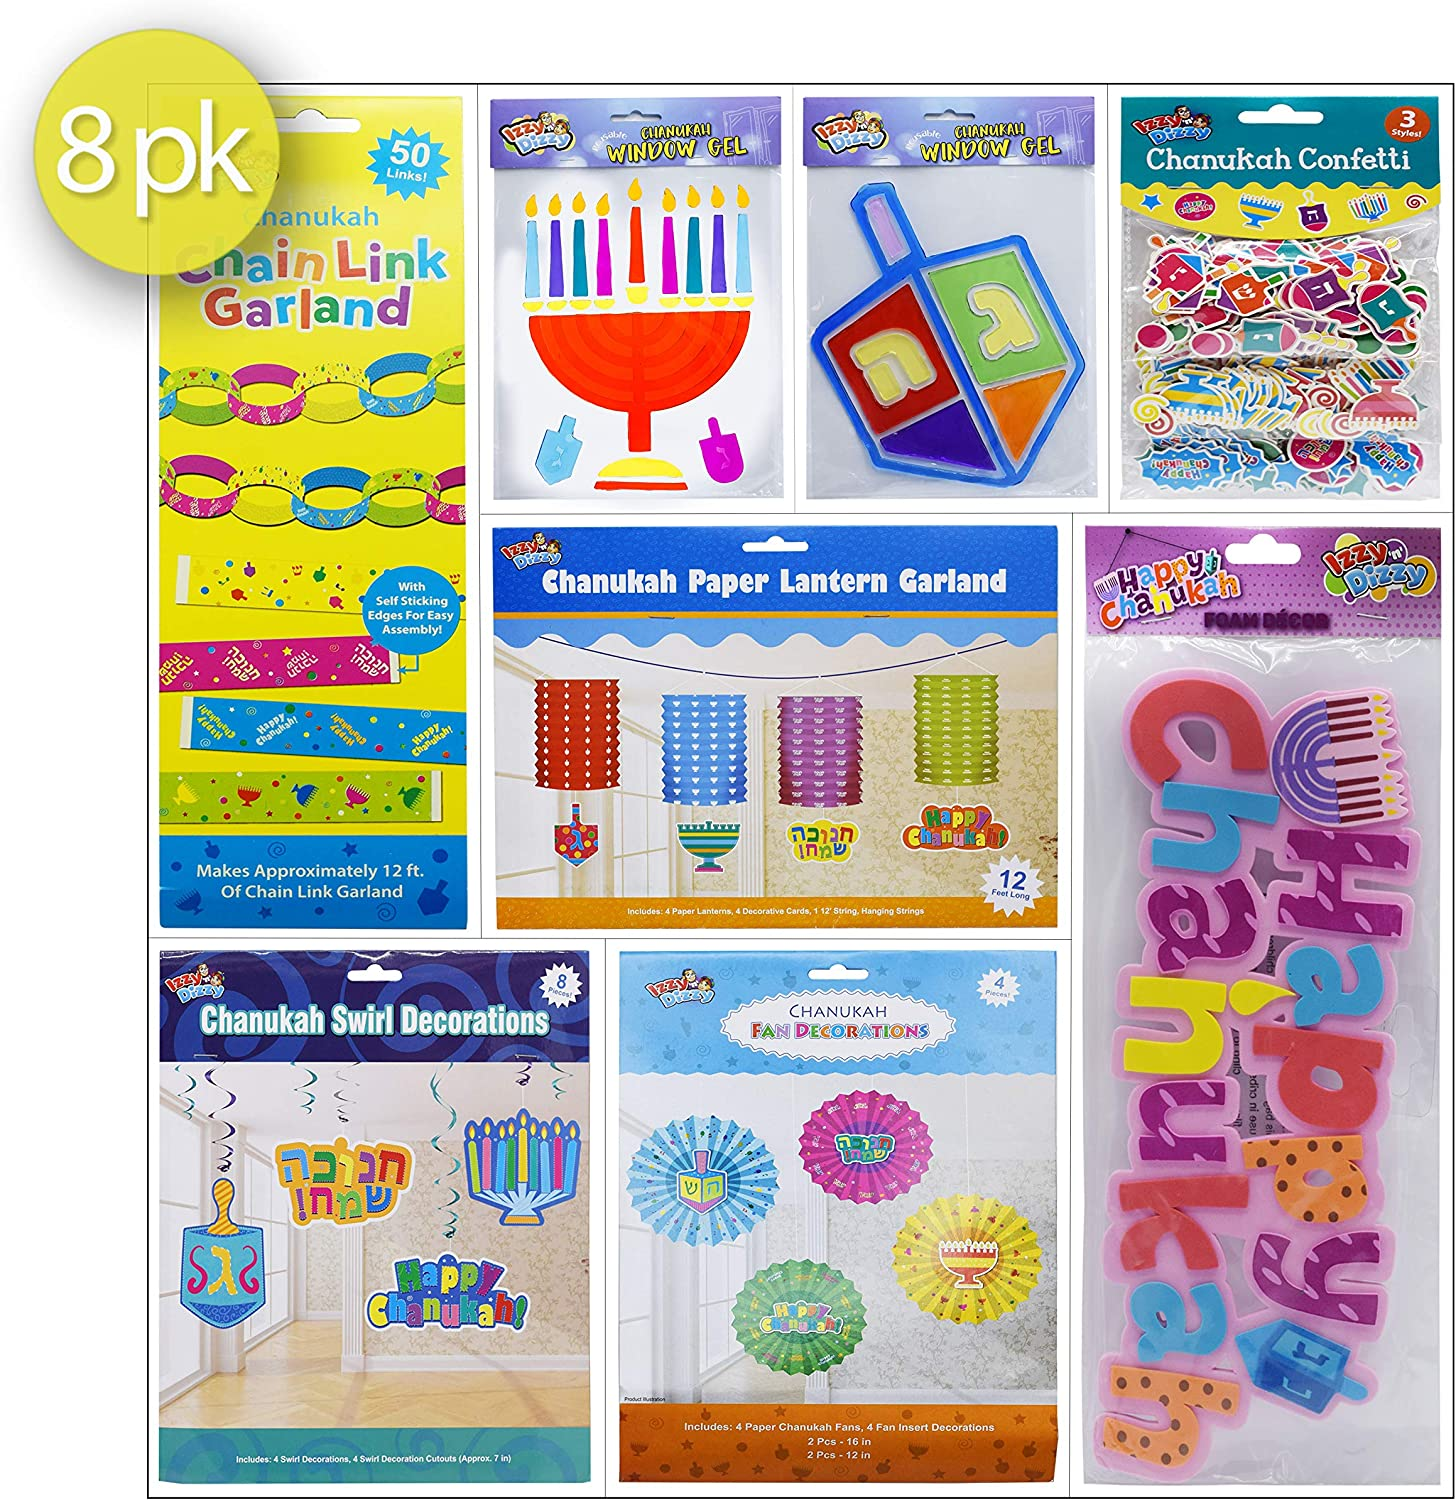 Izzy 'n' Dizzy Chanukah Decoration Mega Pack - 8 Individually Wrapped Packs - Hanukkah Party Decorations and Supplies Assortment